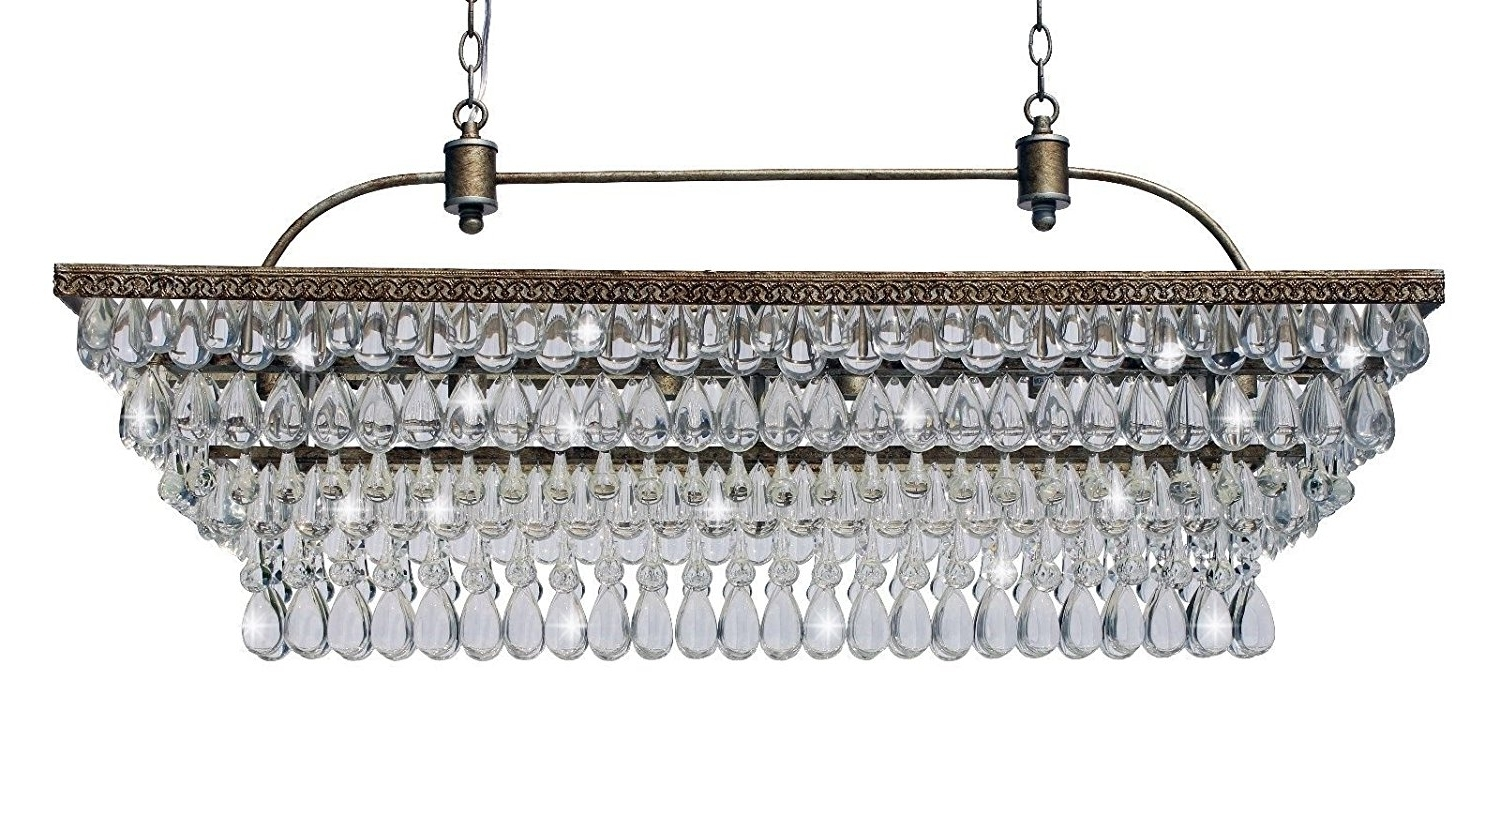 The Weston 40 Inch Rectangular Glass Drop Crystal Chandelier Pertaining To Fashionable Glass Droplet Chandelier (View 14 of 15)